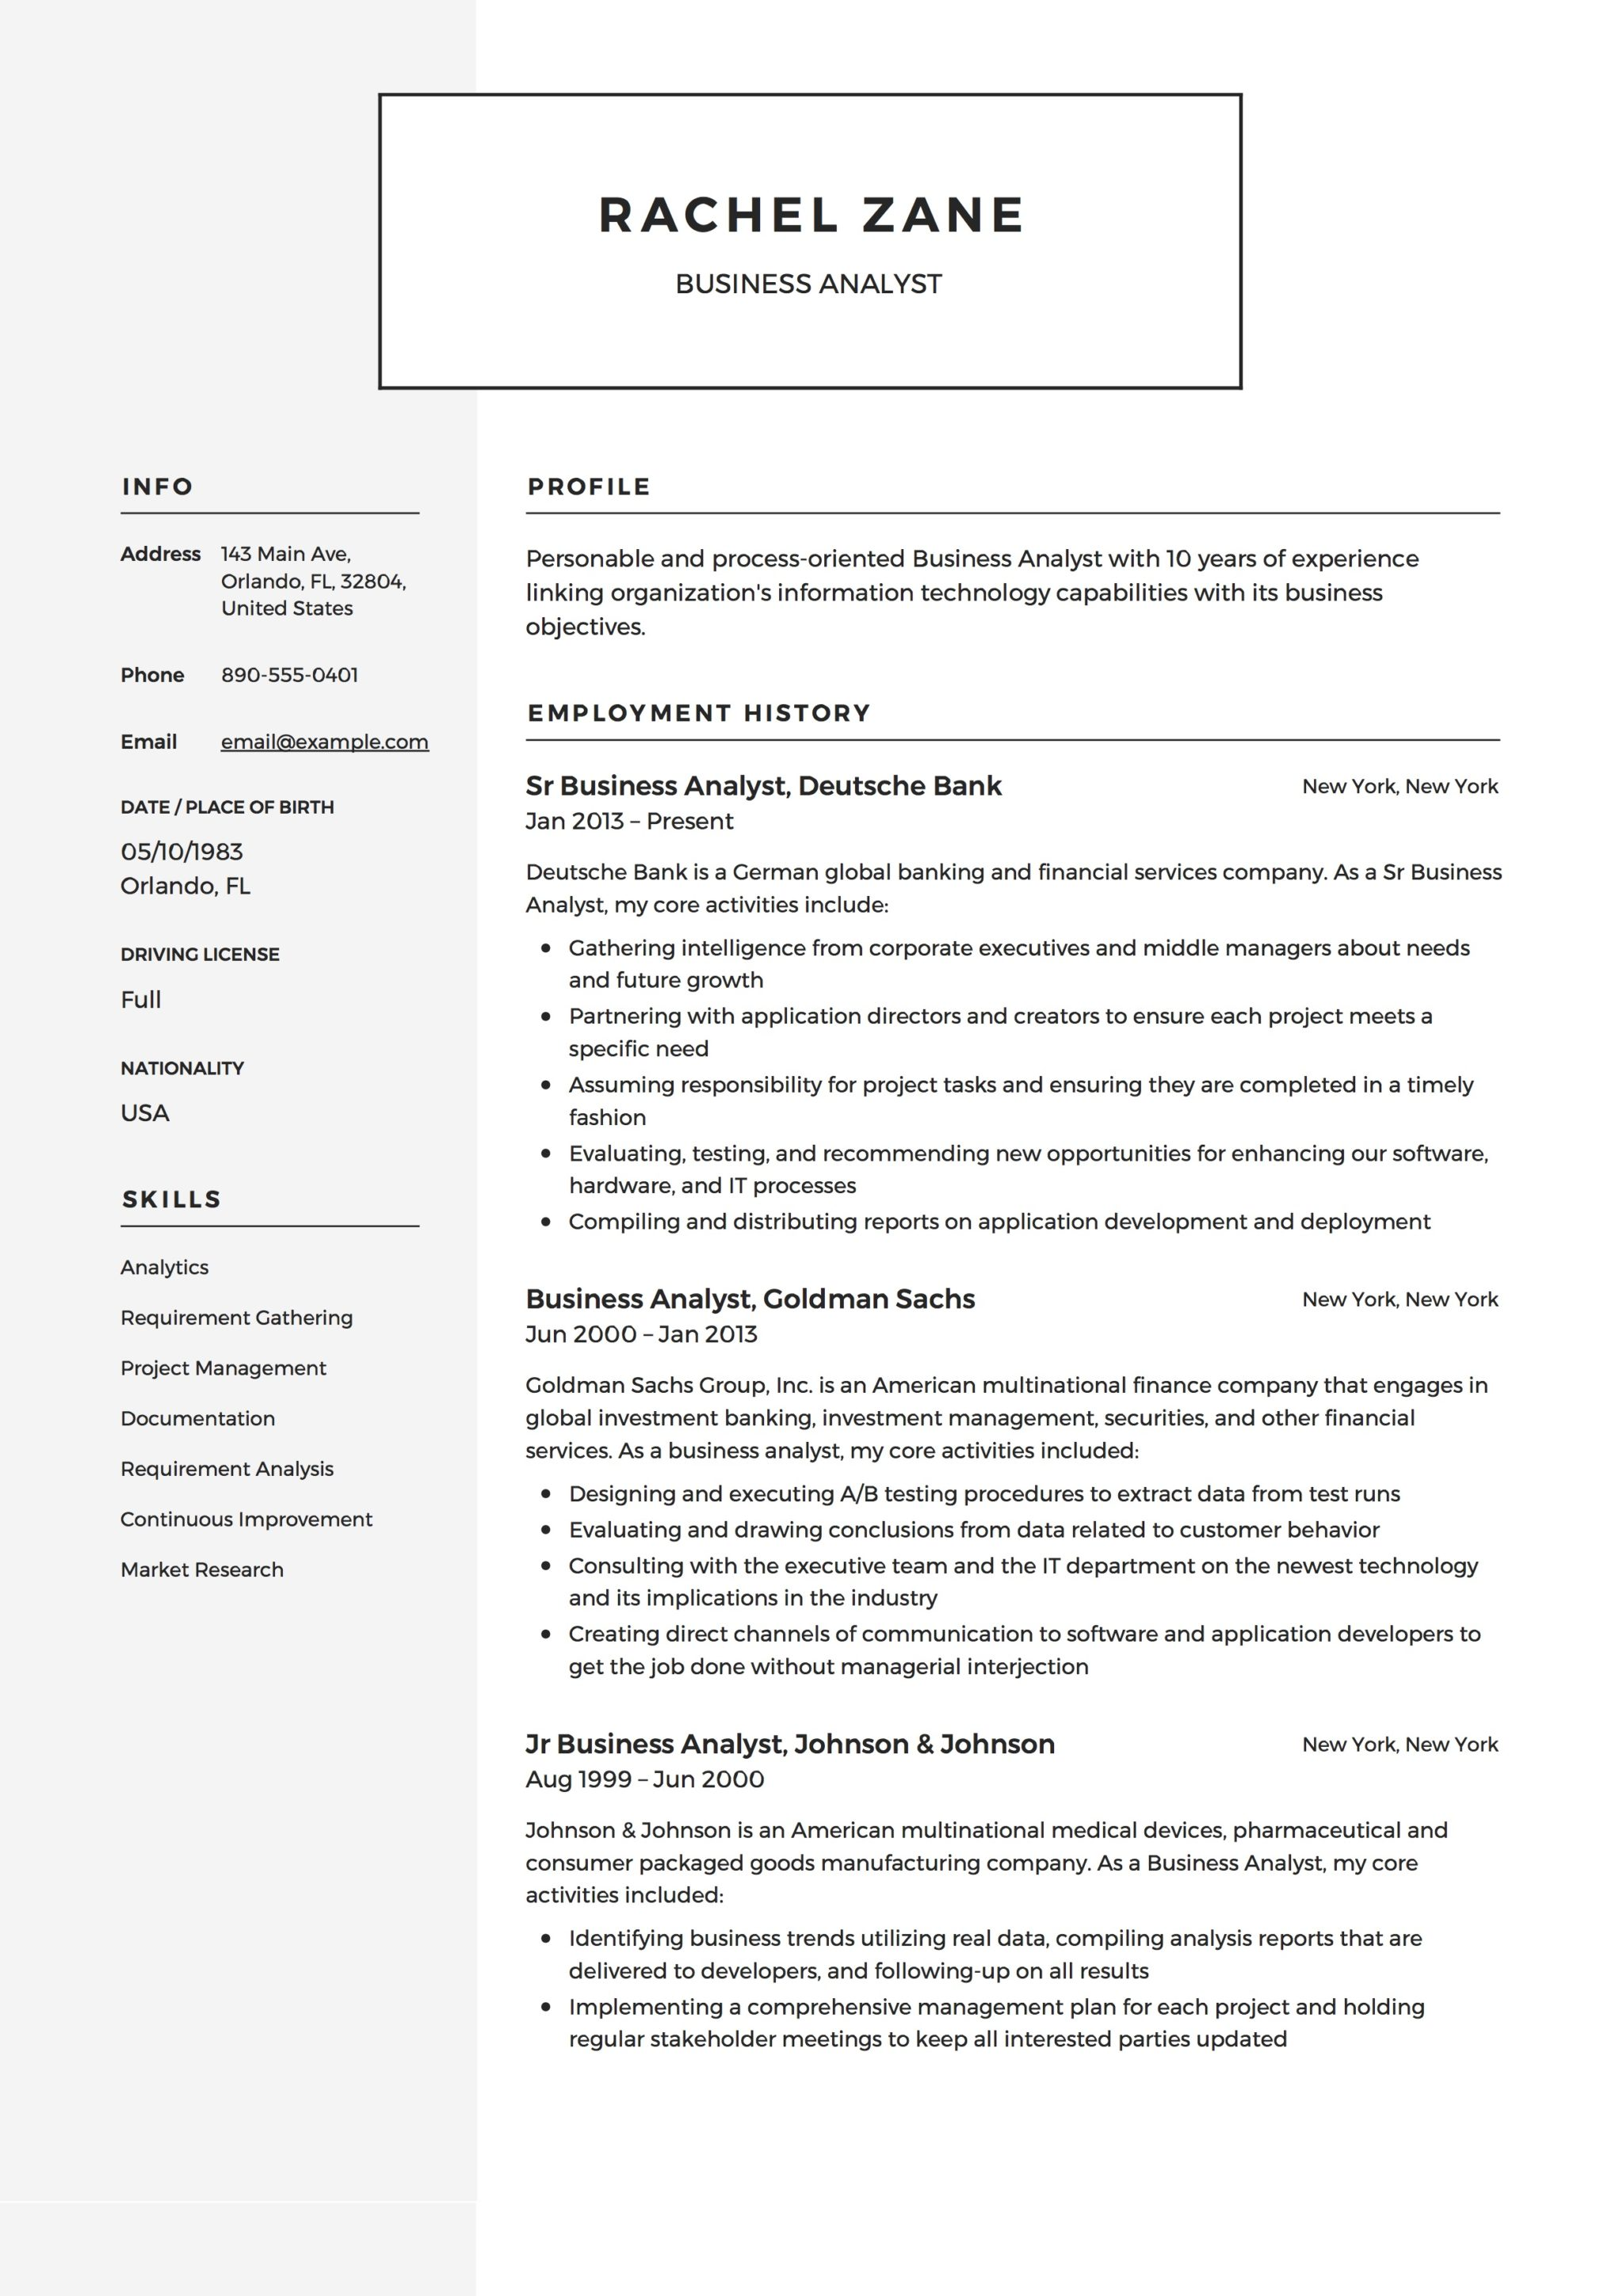 12 business analyst resume samples 2018 free downloads business analyst resume sample wajeb Images